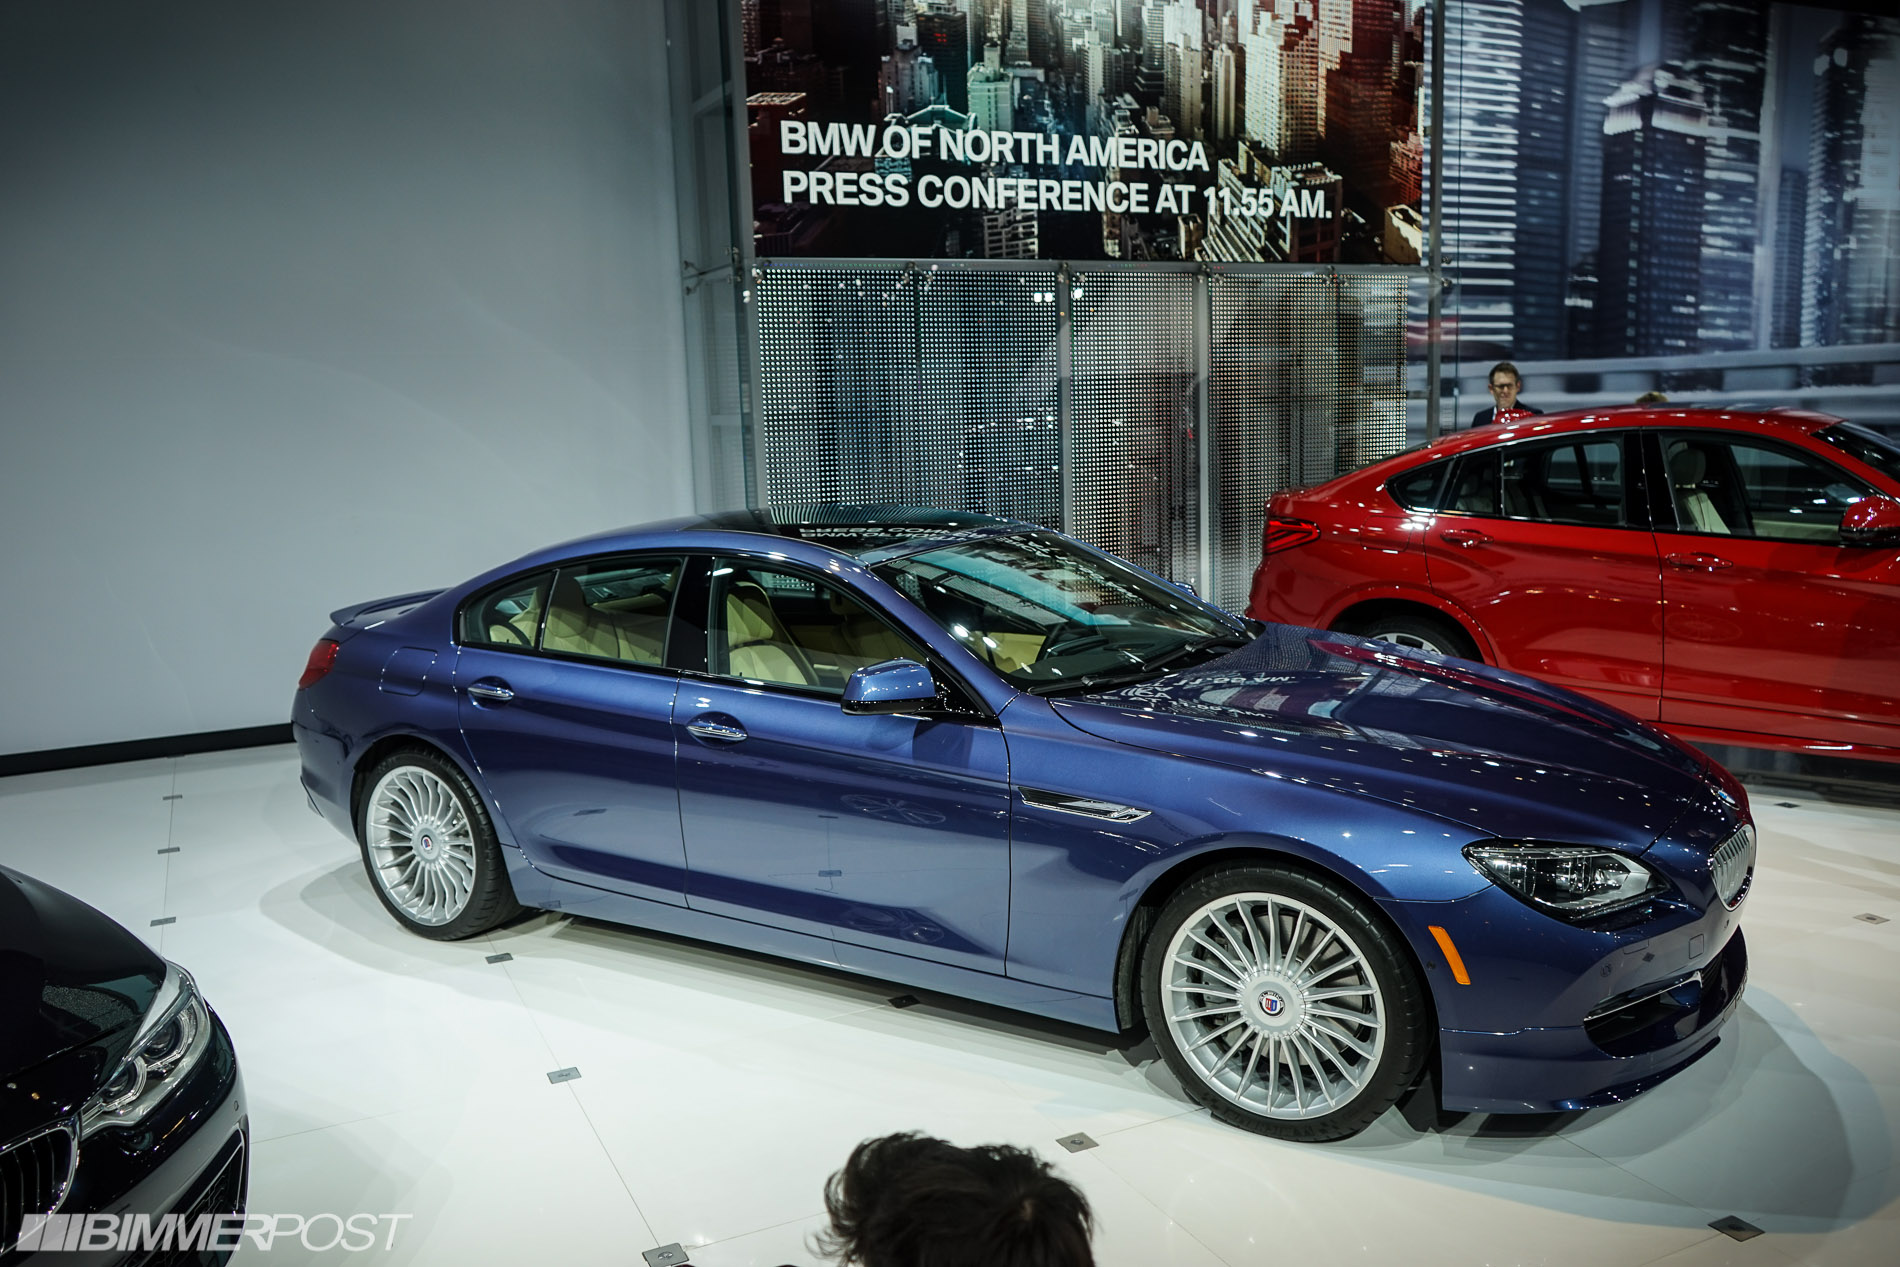 2015 Bmw Alpina B6 Gran Coupe #3